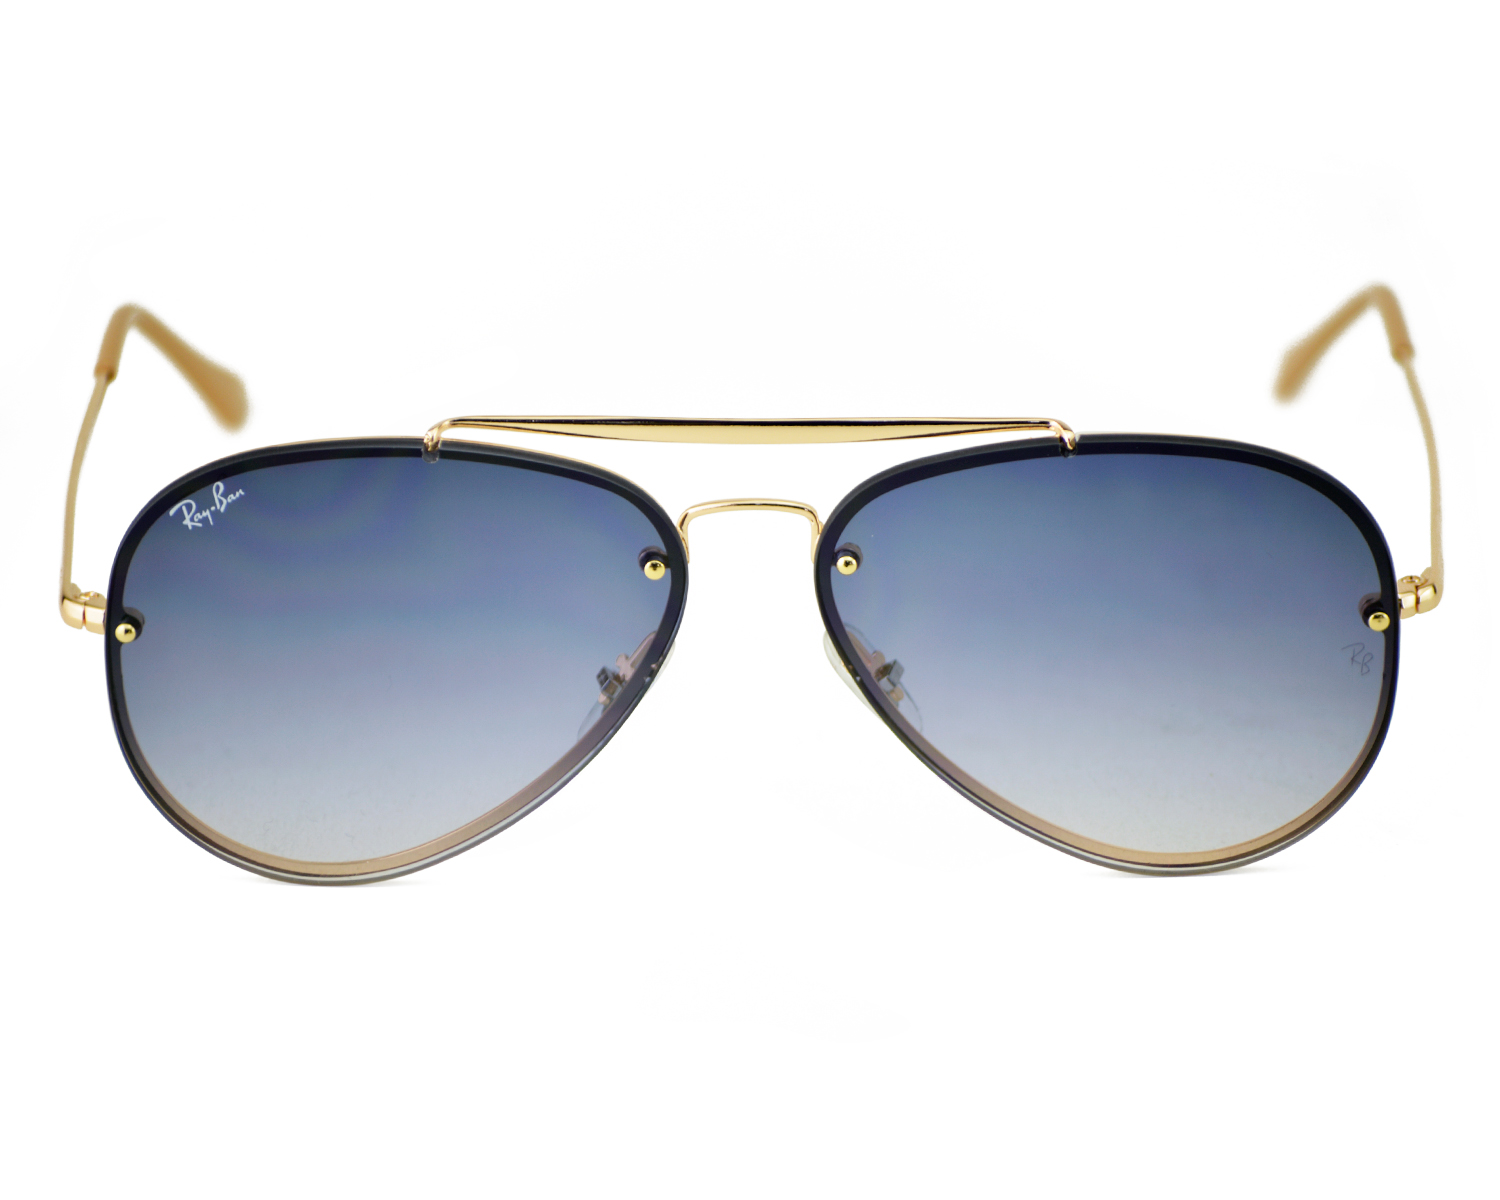 3130aea0e61 Ray-Ban RB3584N Blaze Aviator 001 19 Gold Frame Light Blue Gradient Lenses  Unisex Sunglasses 58mm